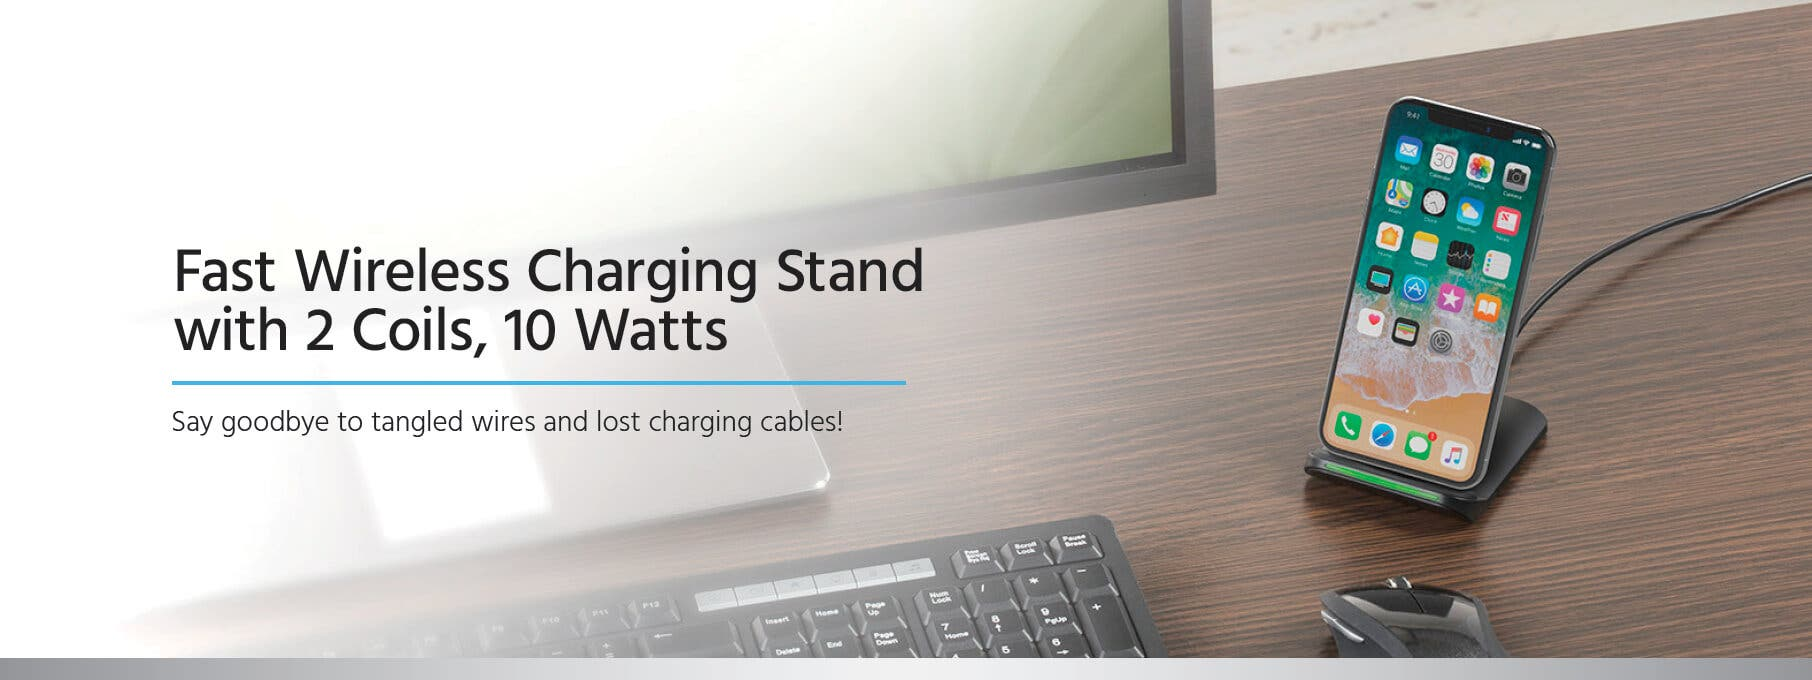 Monoprice Fast Wireless Charging Stand with 2 Coils, 10W, Qi